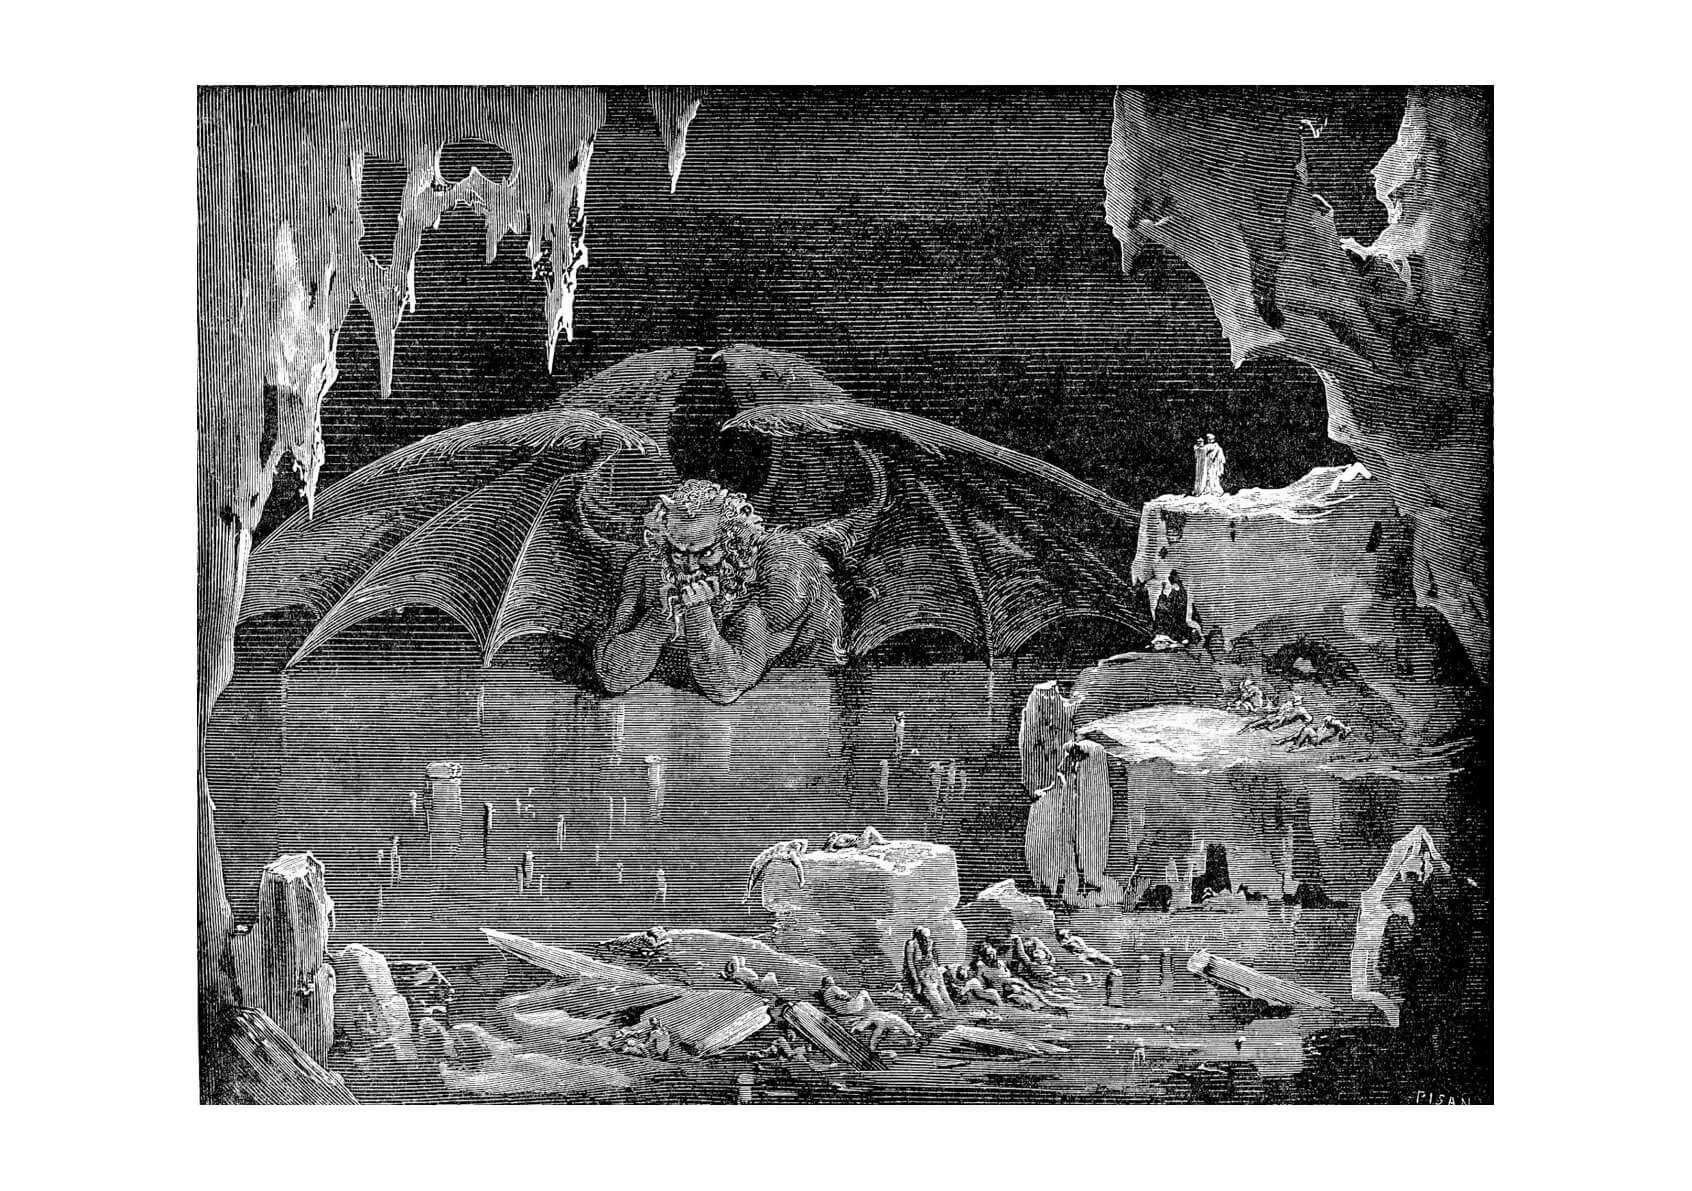 Gustave Doré - Dante's Inferno - Lucifer Kin Of Hell